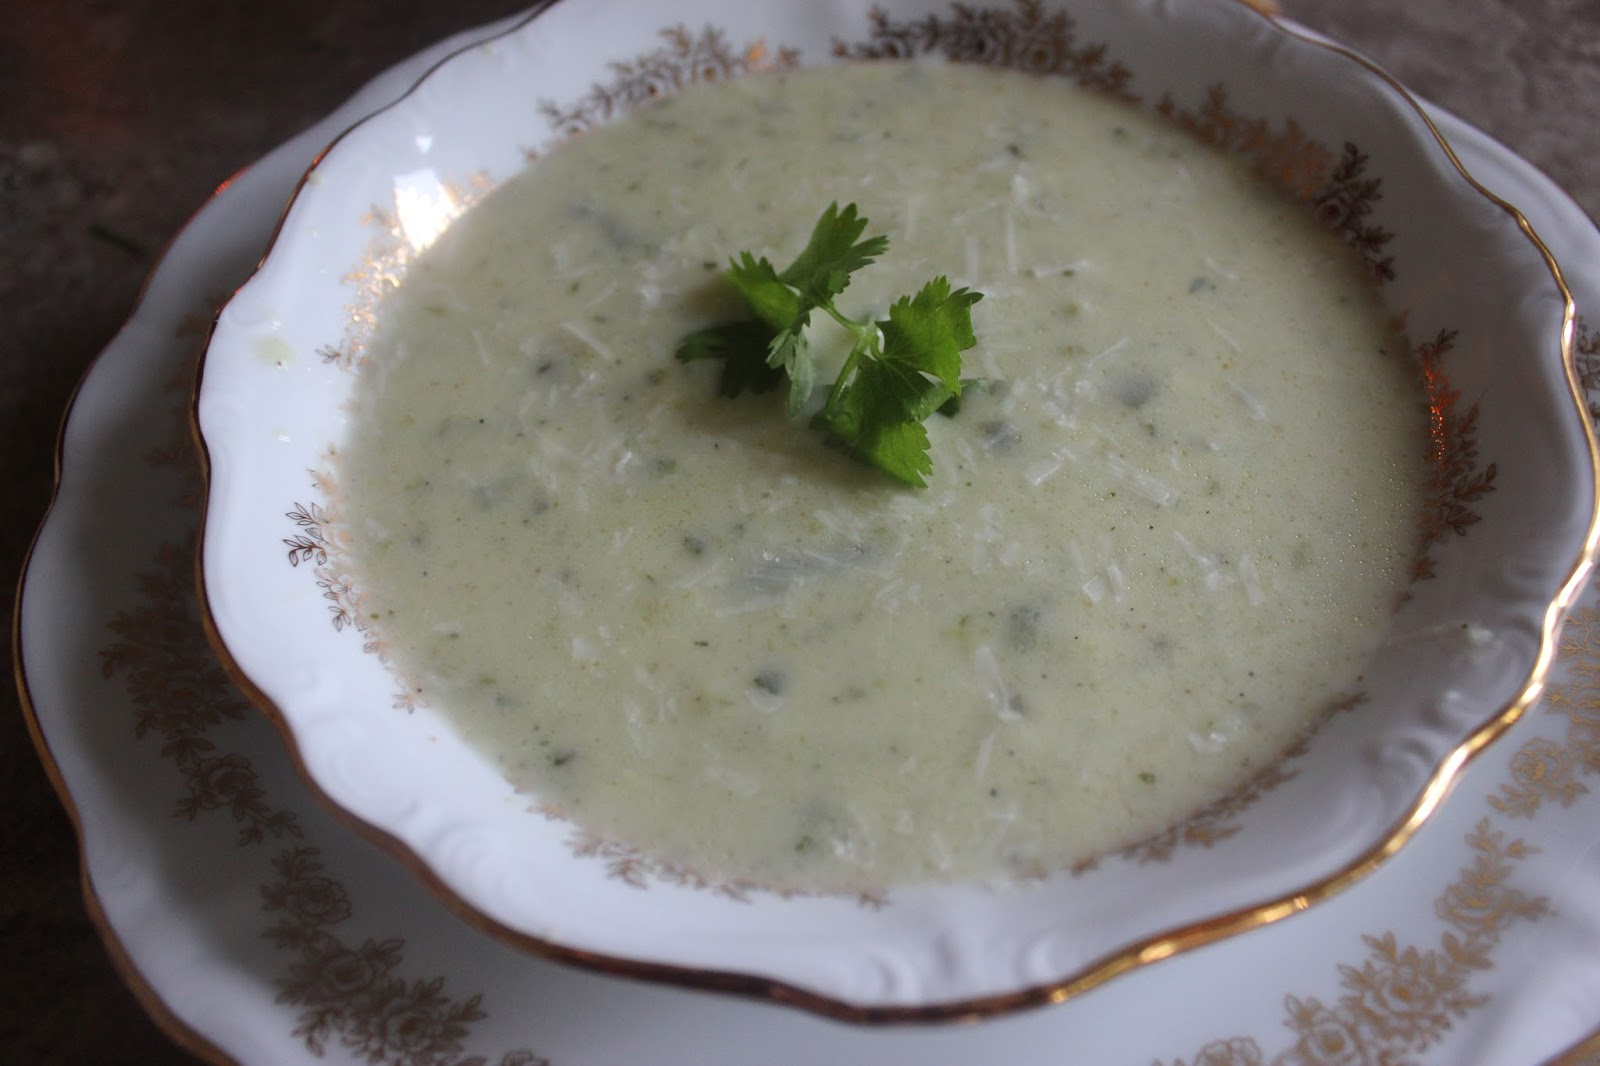 Sisters Luv 2 Cook: Spicy Zucchini Soup